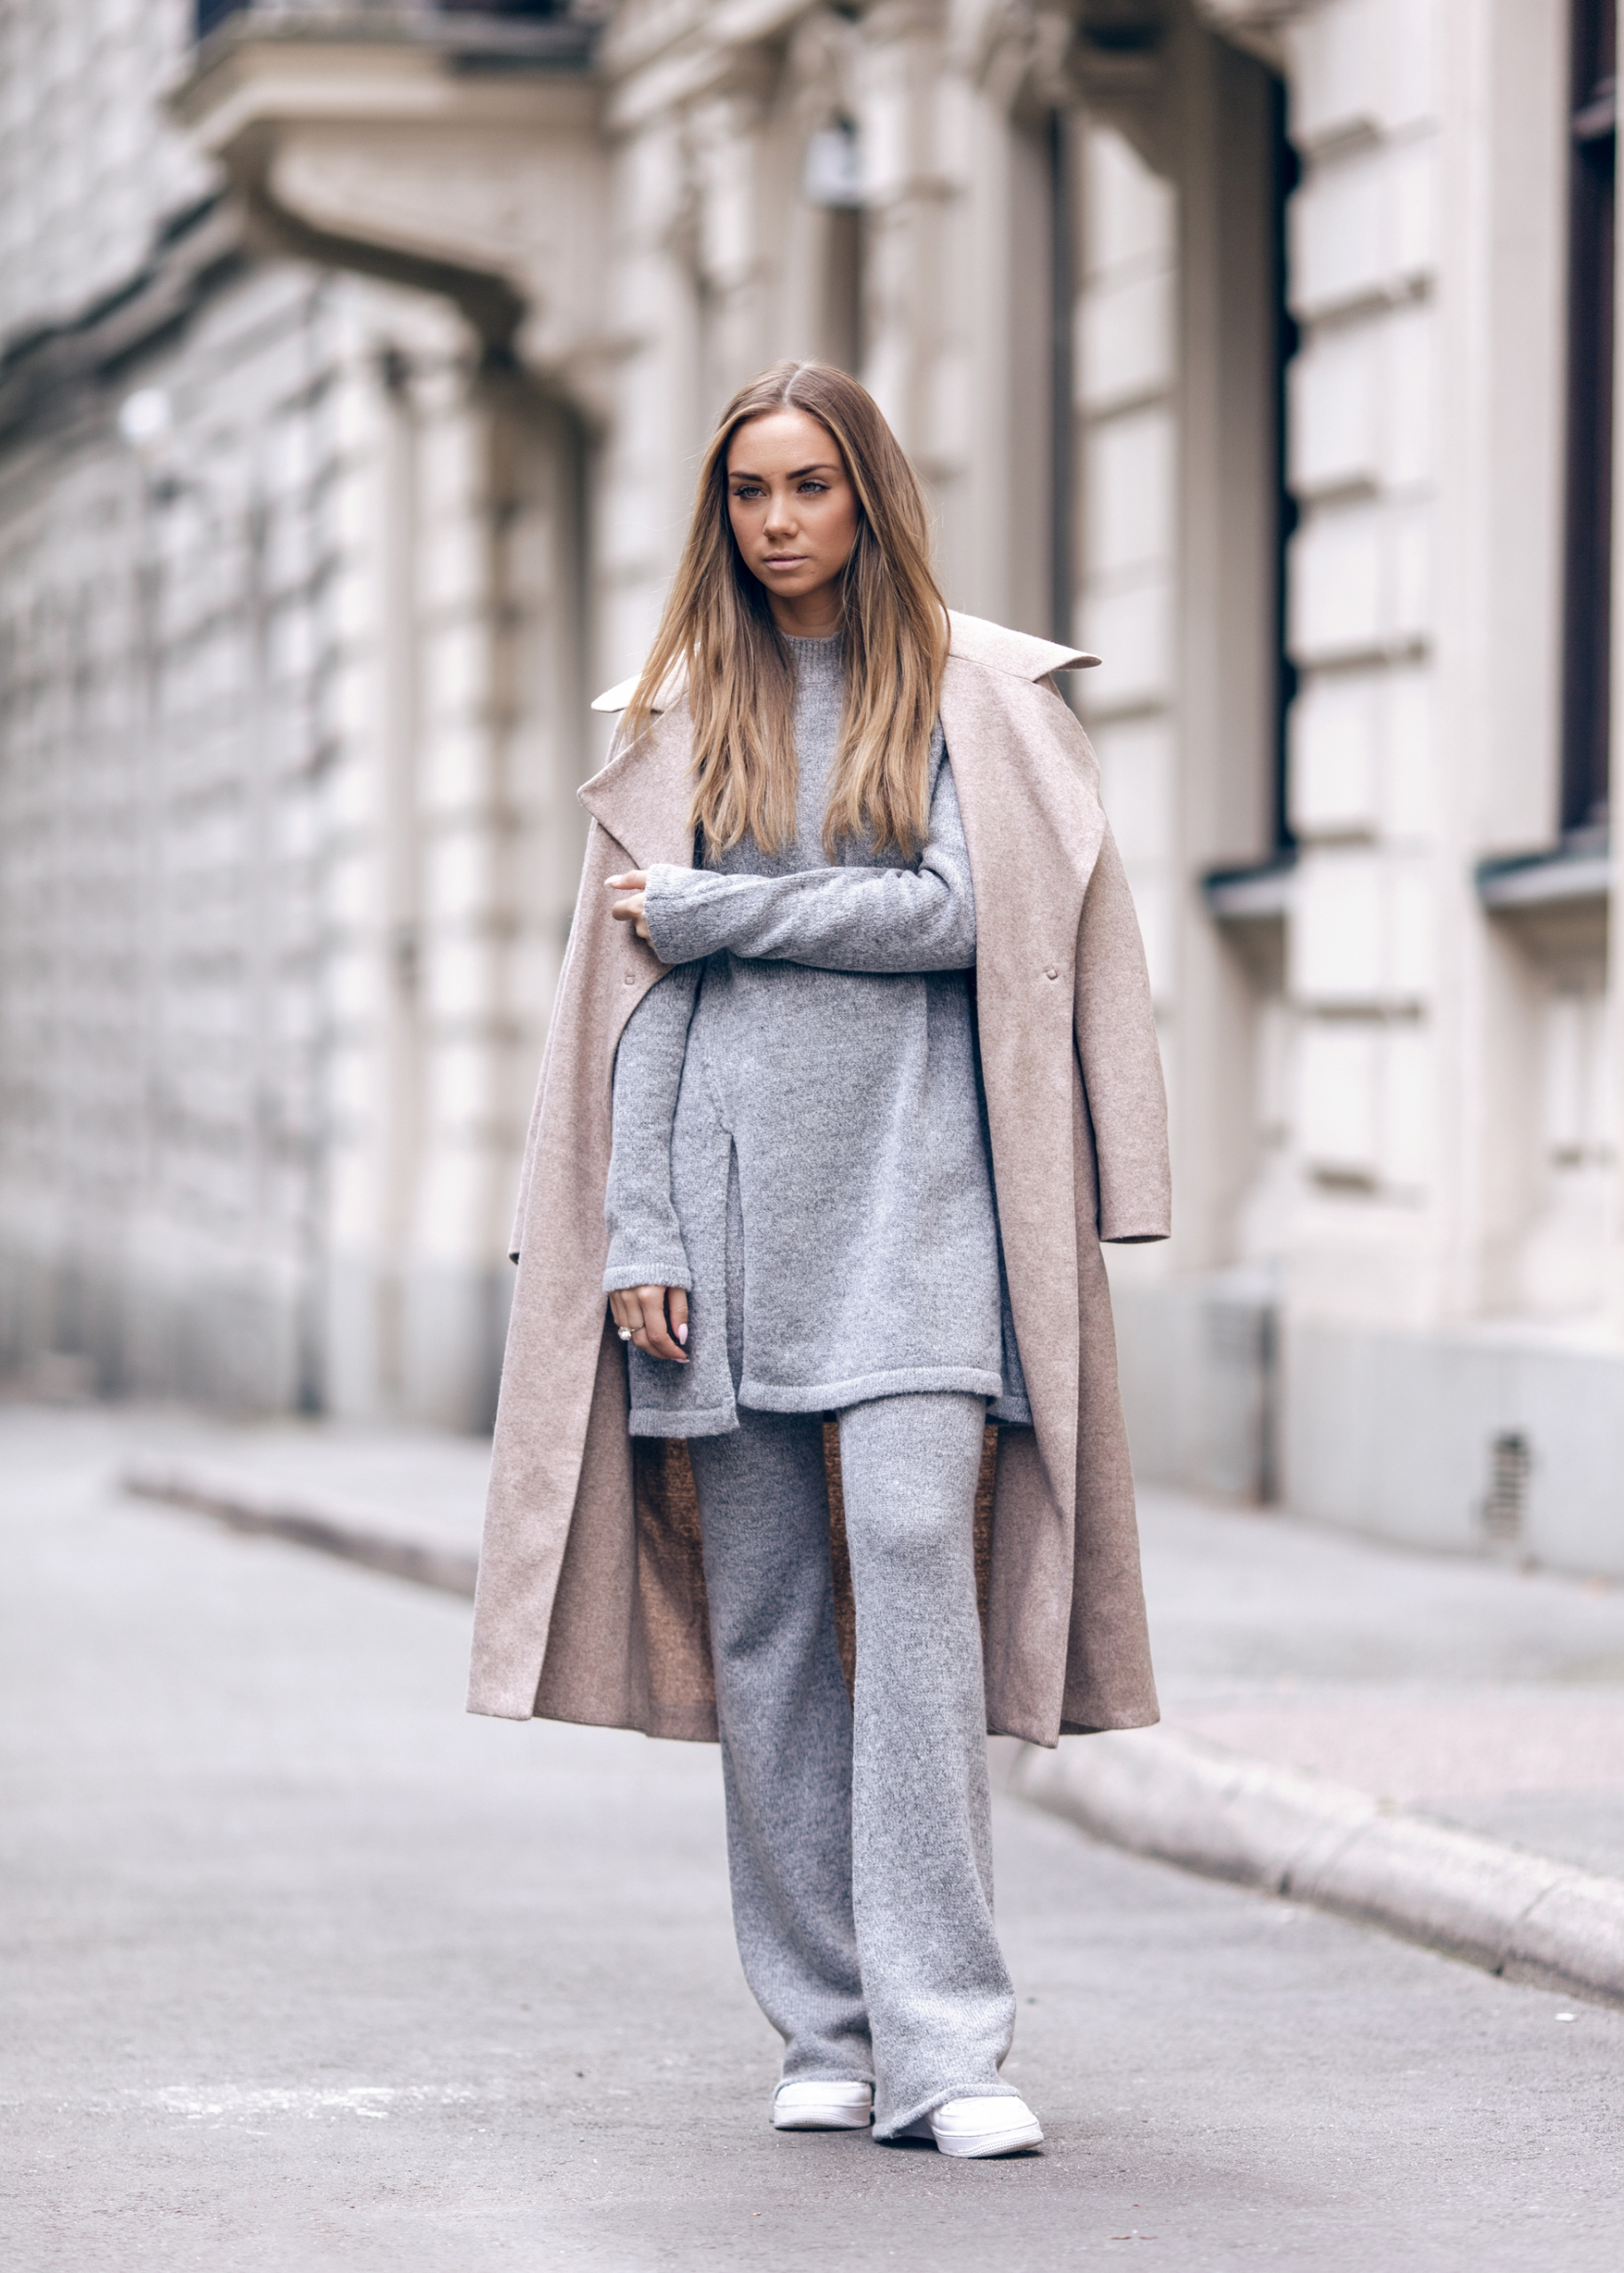 Lisa Olsson rocks this marl grey matching two piece. Wear something similar with a neutral overcoat to recreate this look. Coat: Filippa K, Two piece: Gina Tricot, Sneakers: Nike.